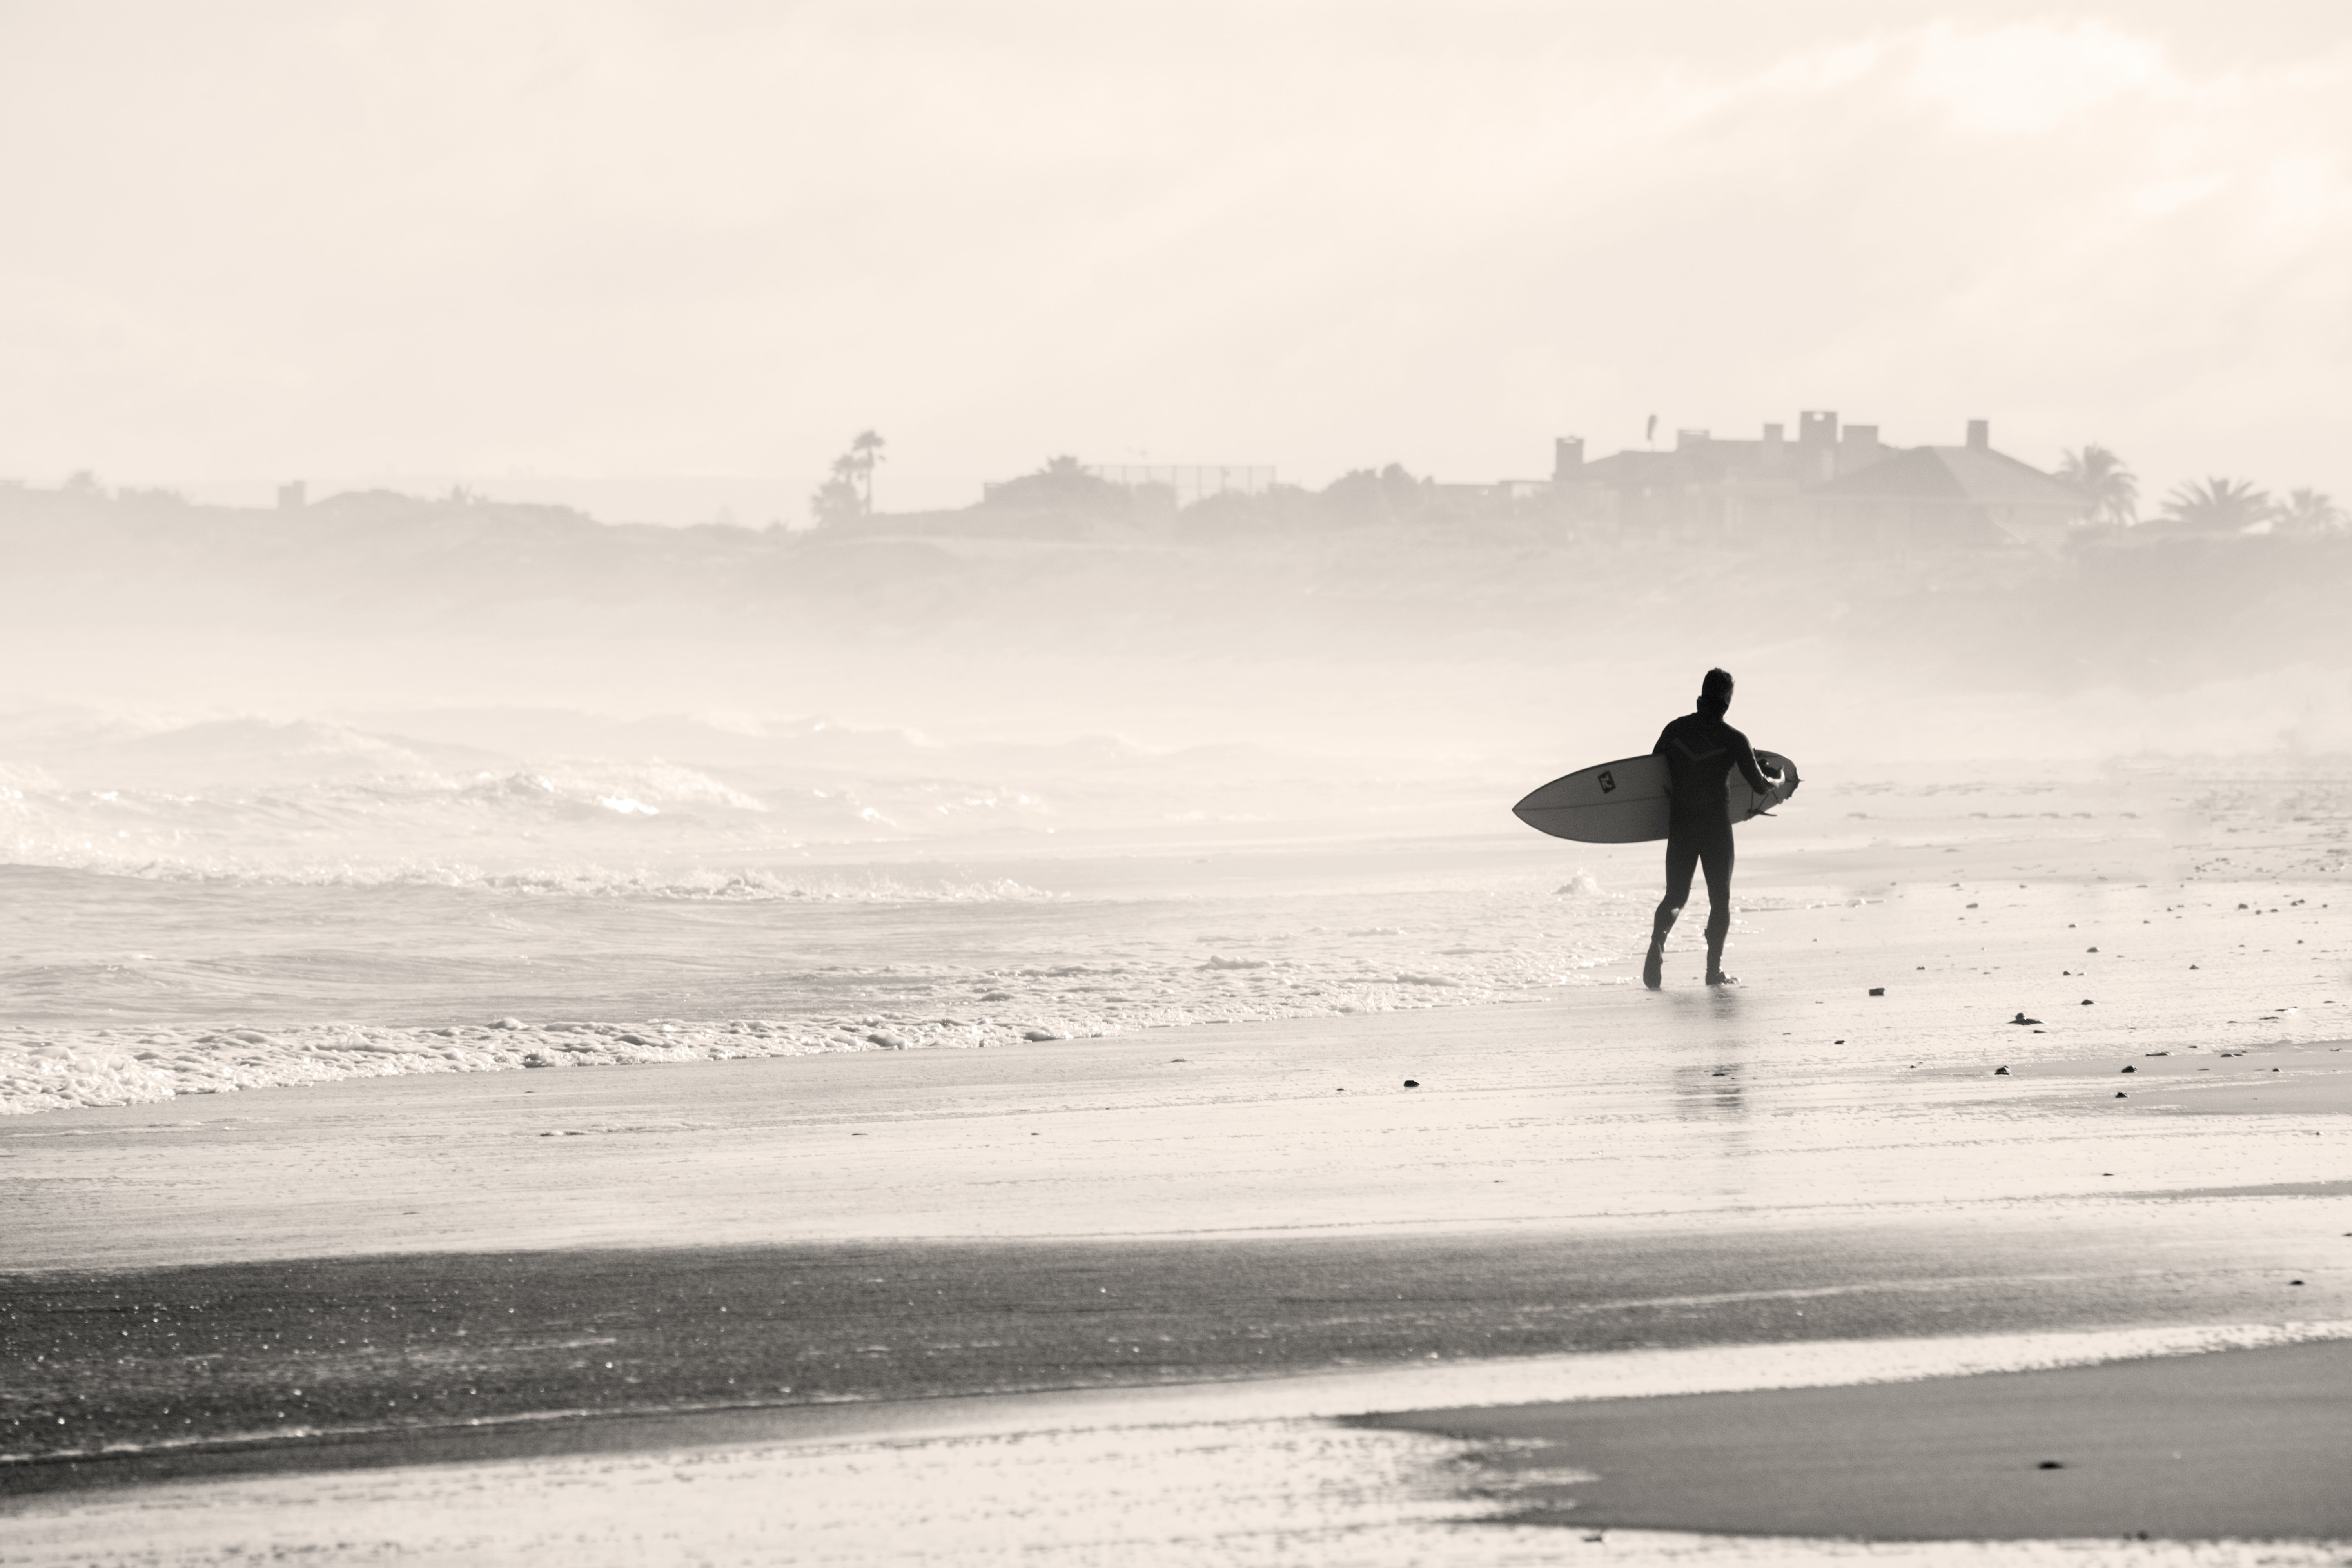 Surfer walking on the beach by the rough ocean in Cape Town